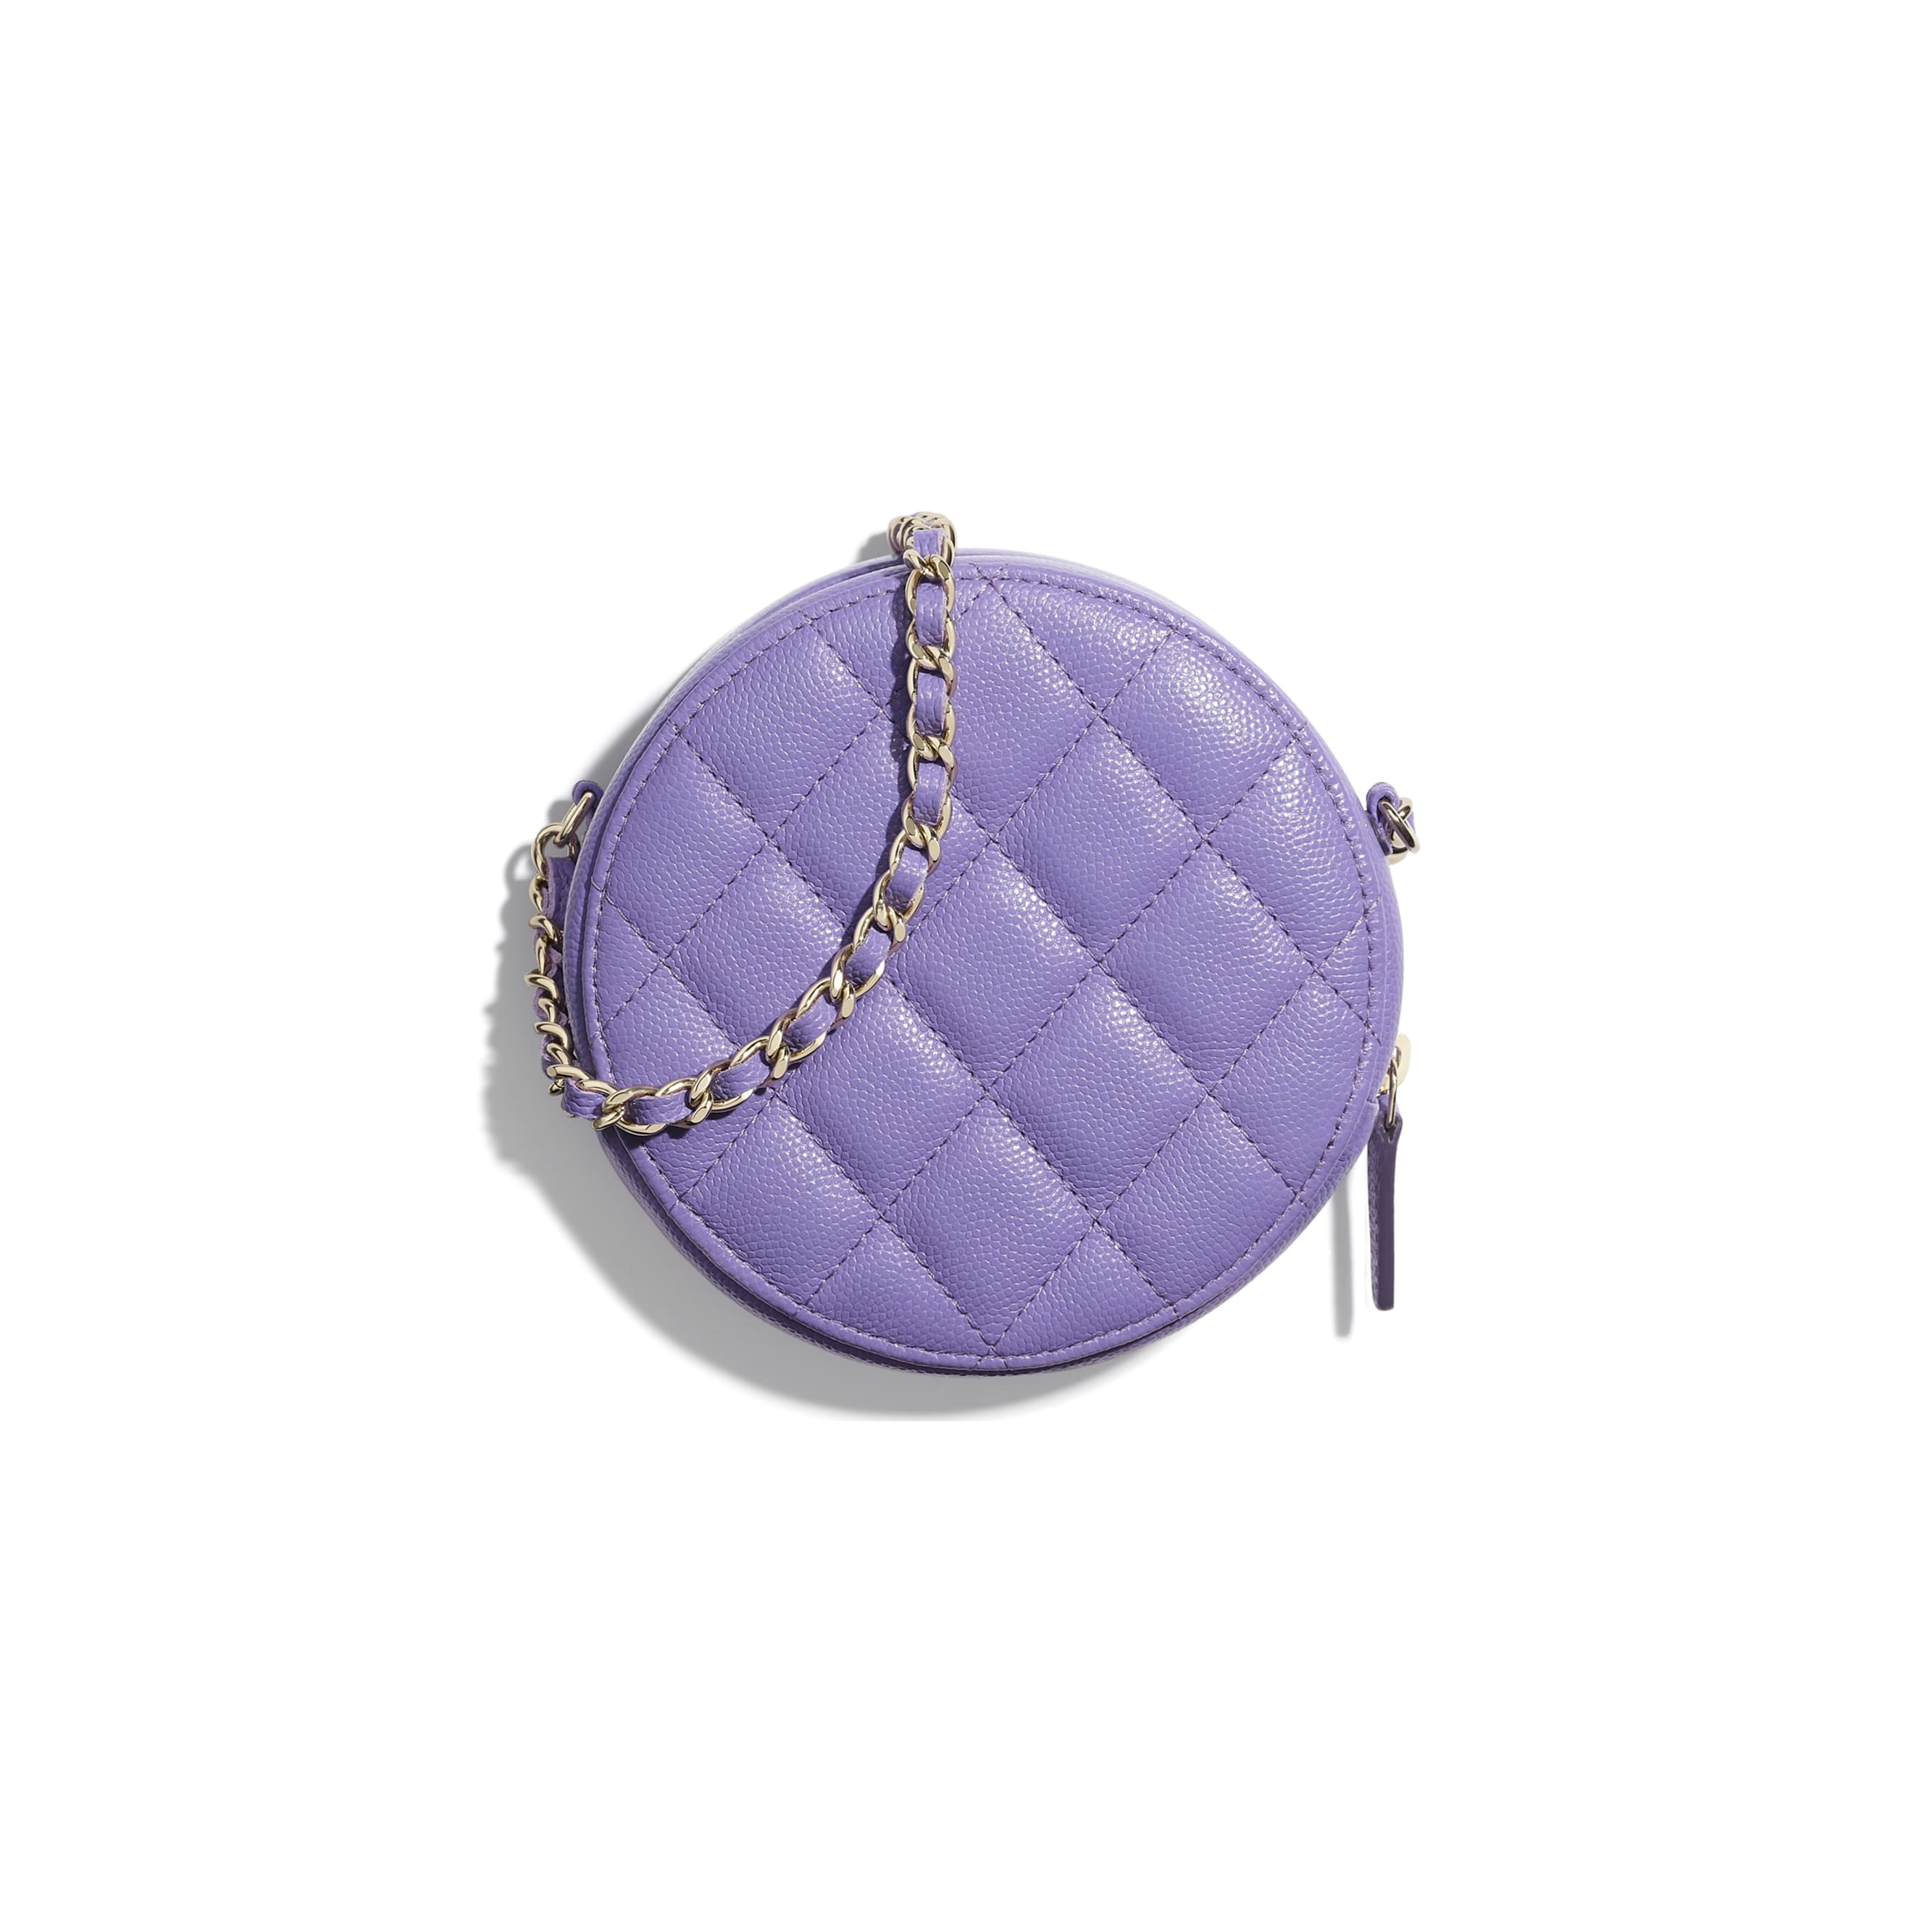 Classic Clutch With Chain - Purple - Grained Calfskin & Gold-Tone Metal - CHANEL - Alternative view - see standard sized version